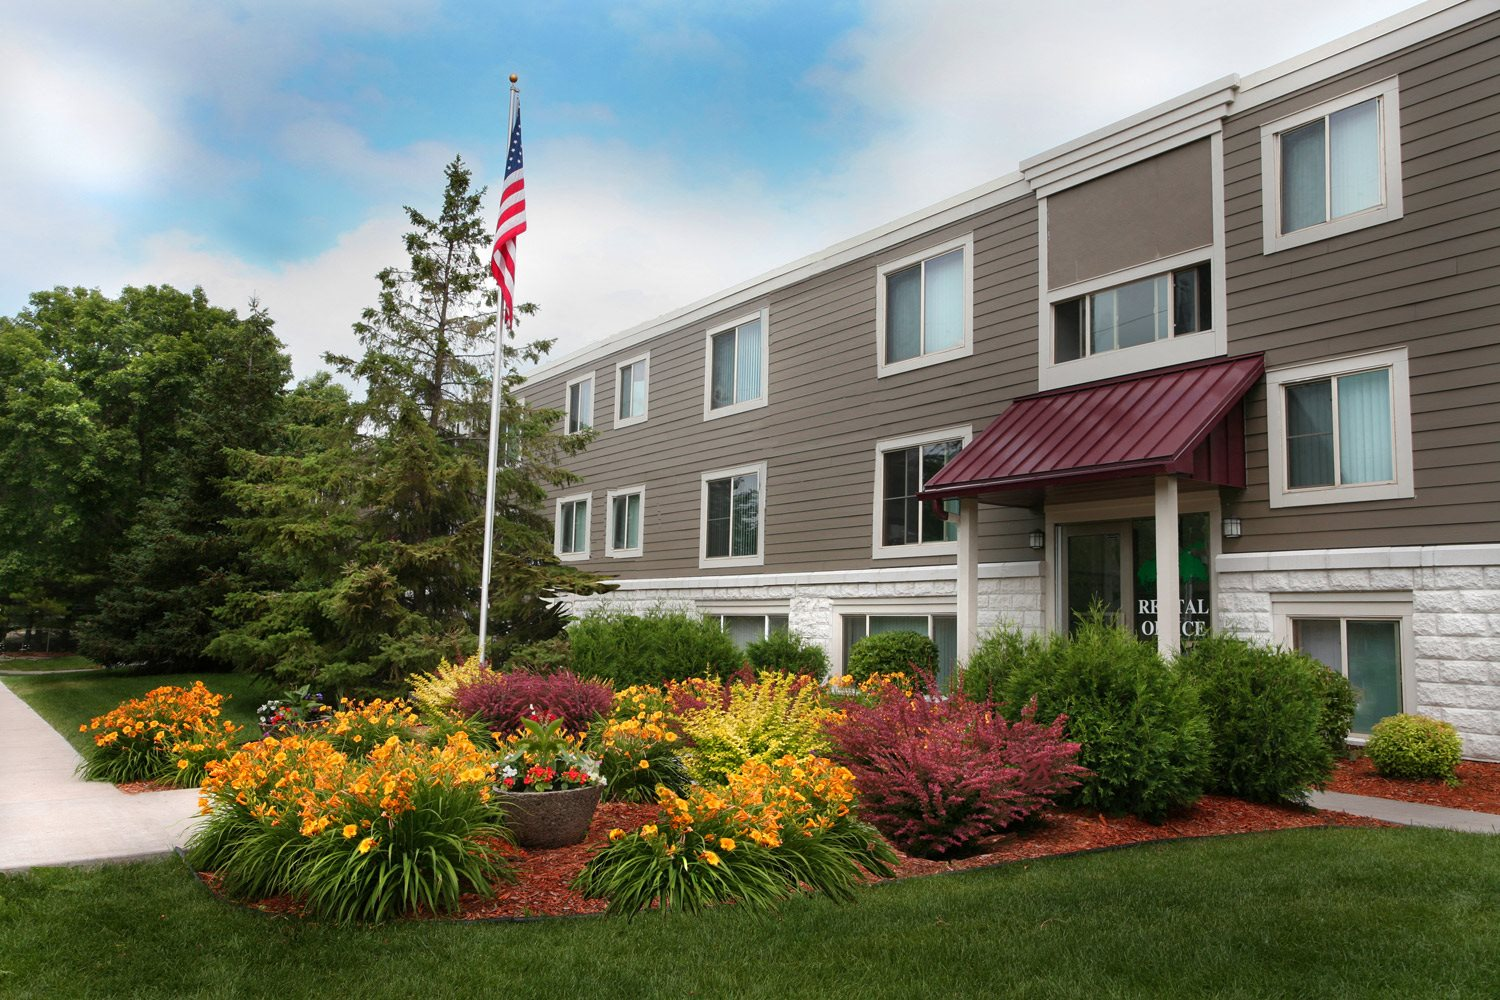 Minnehaha Manor Apartments in Oakdale, MN Building Exterior